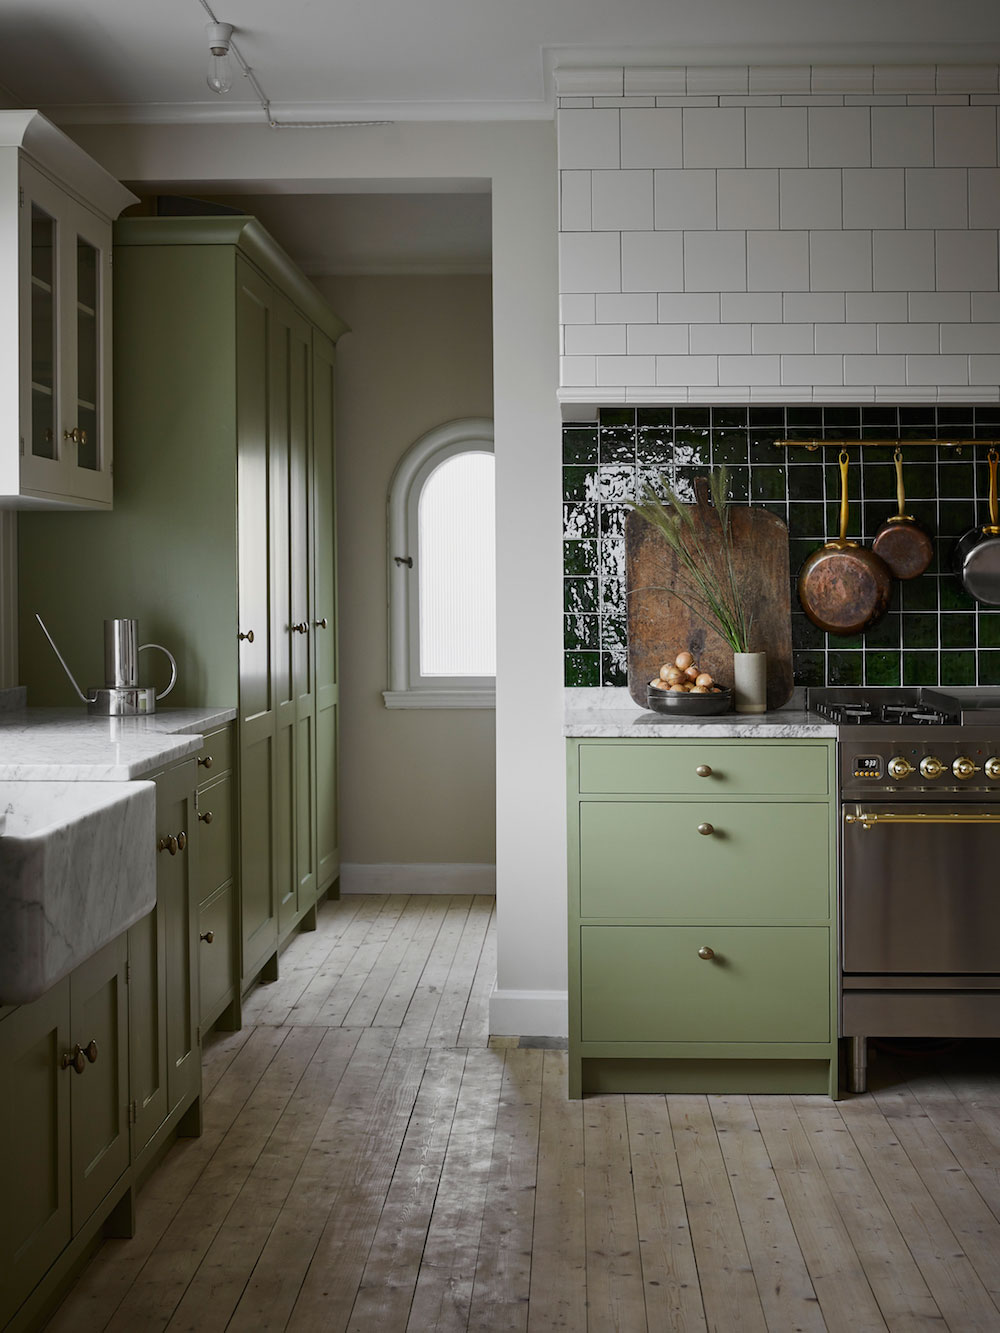 Traditional Country Chic Kitchens The Swedish Way Nordic Design